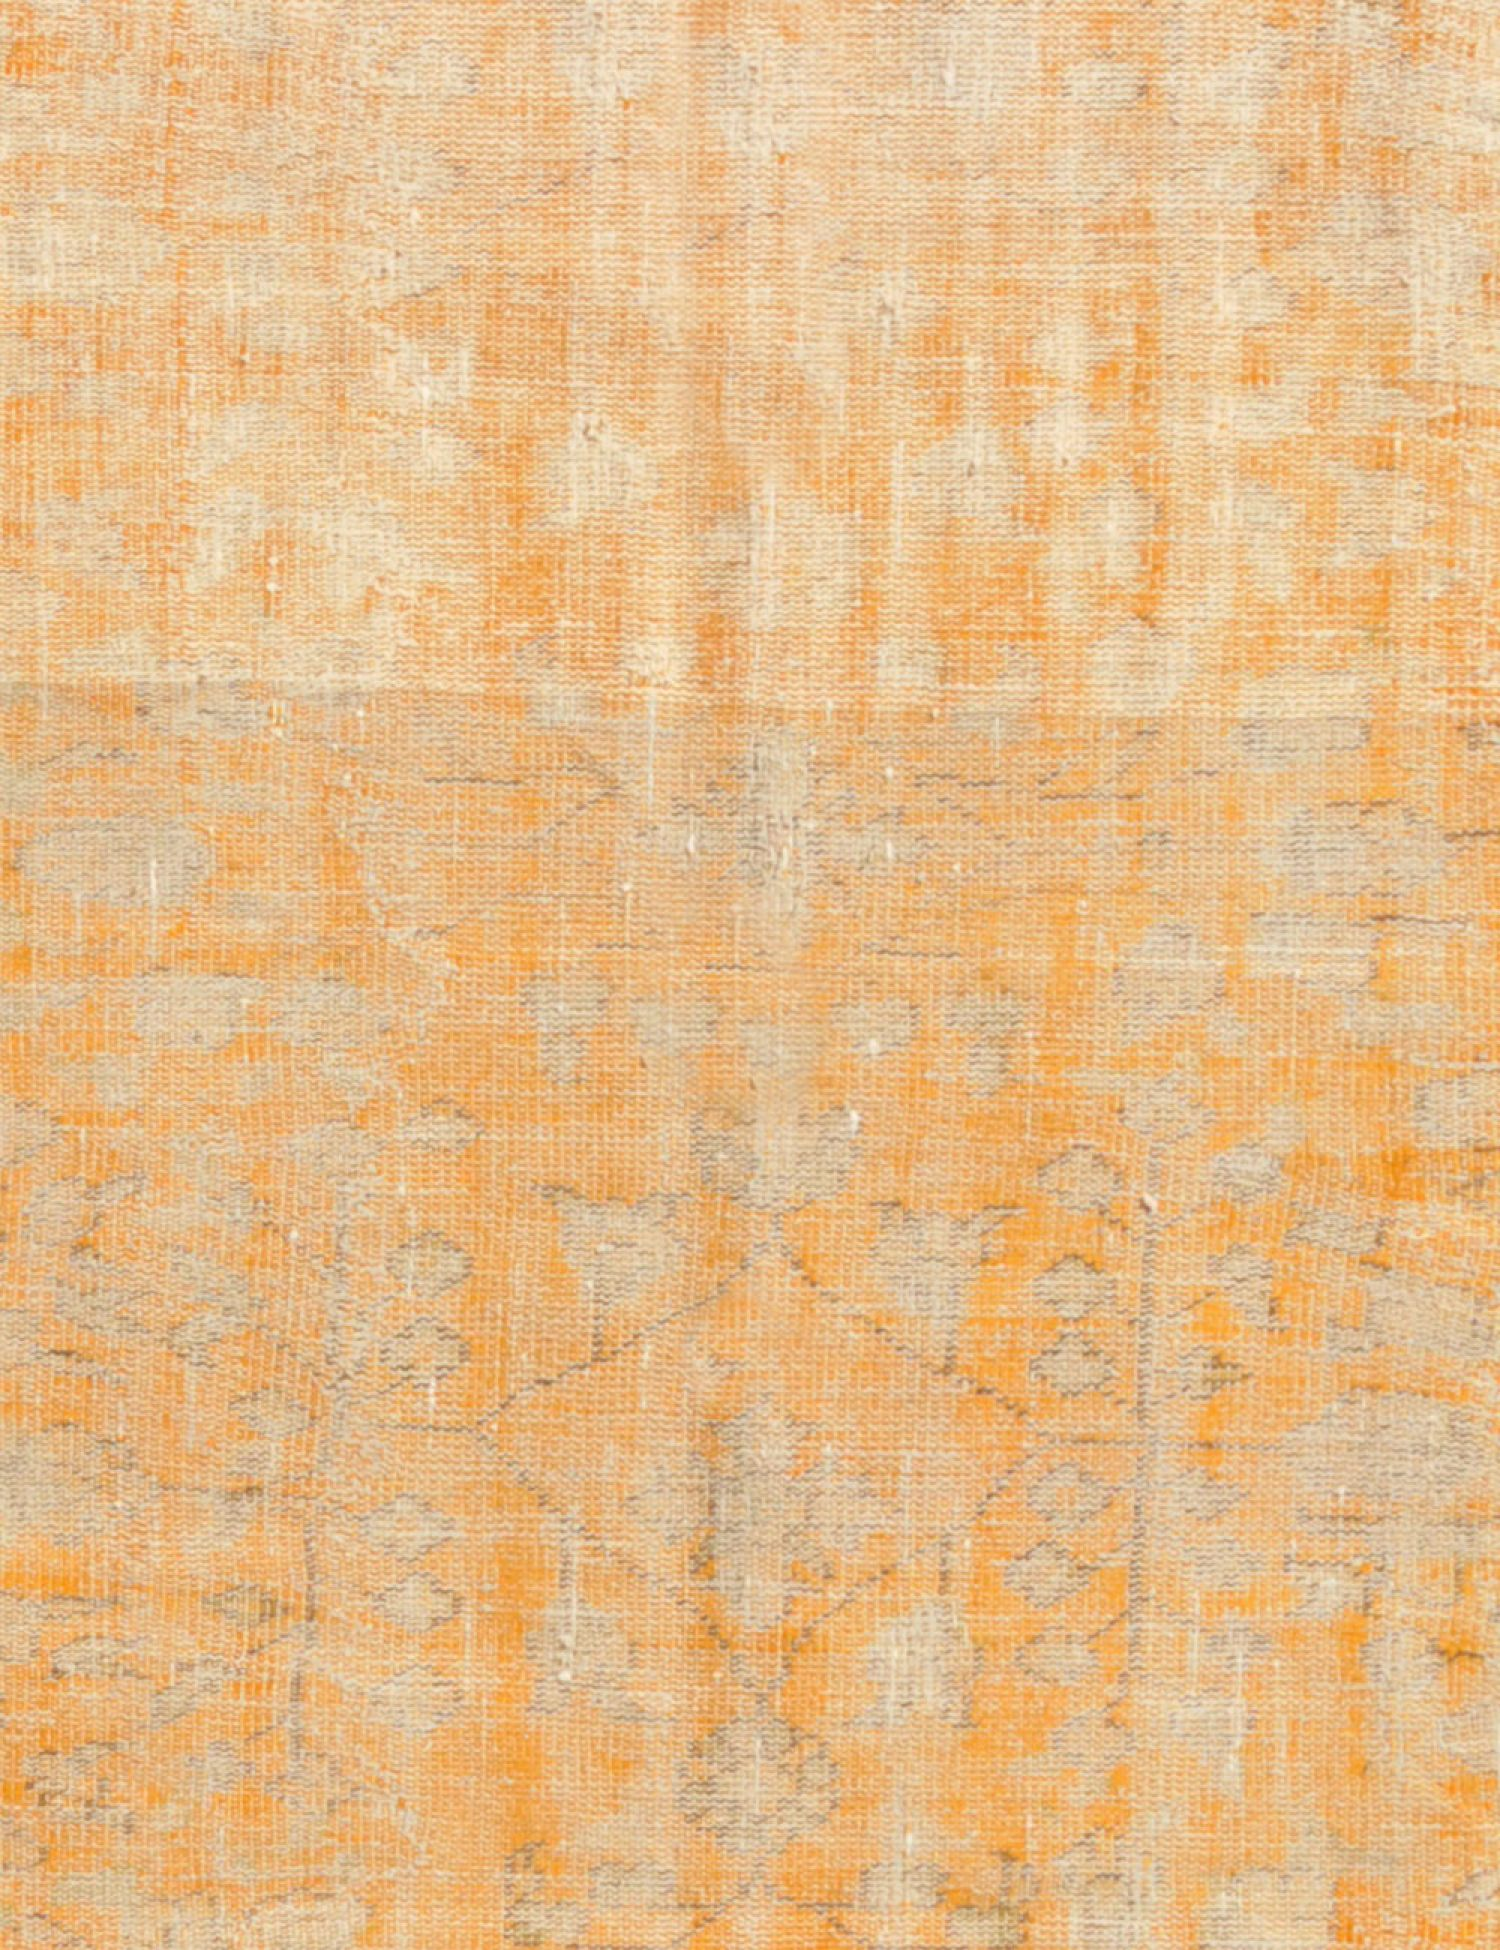 Vintage Carpet  orange <br/>312 x 221 cm